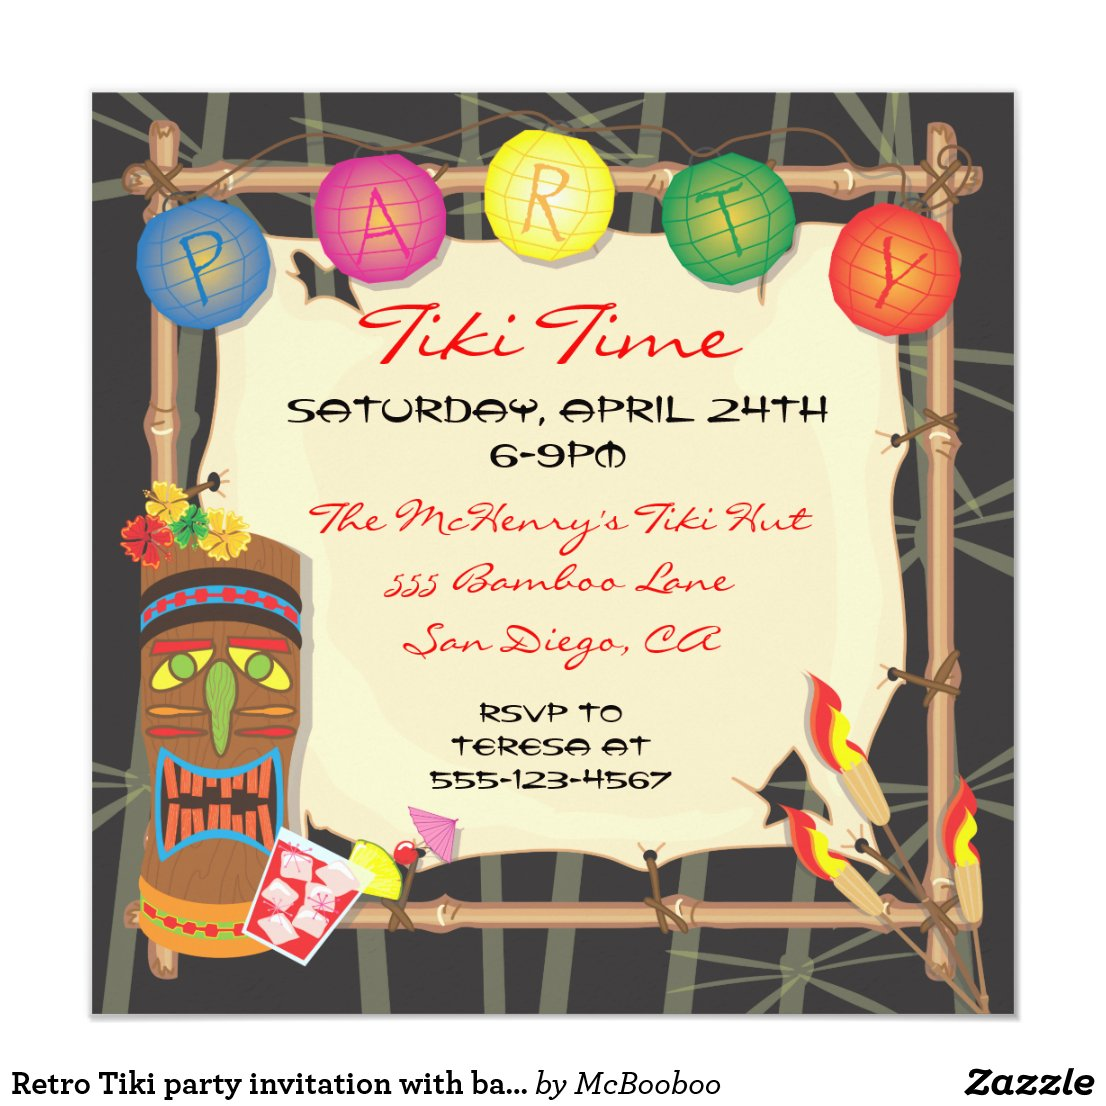 Retro Tiki party invitation with bamboo frame